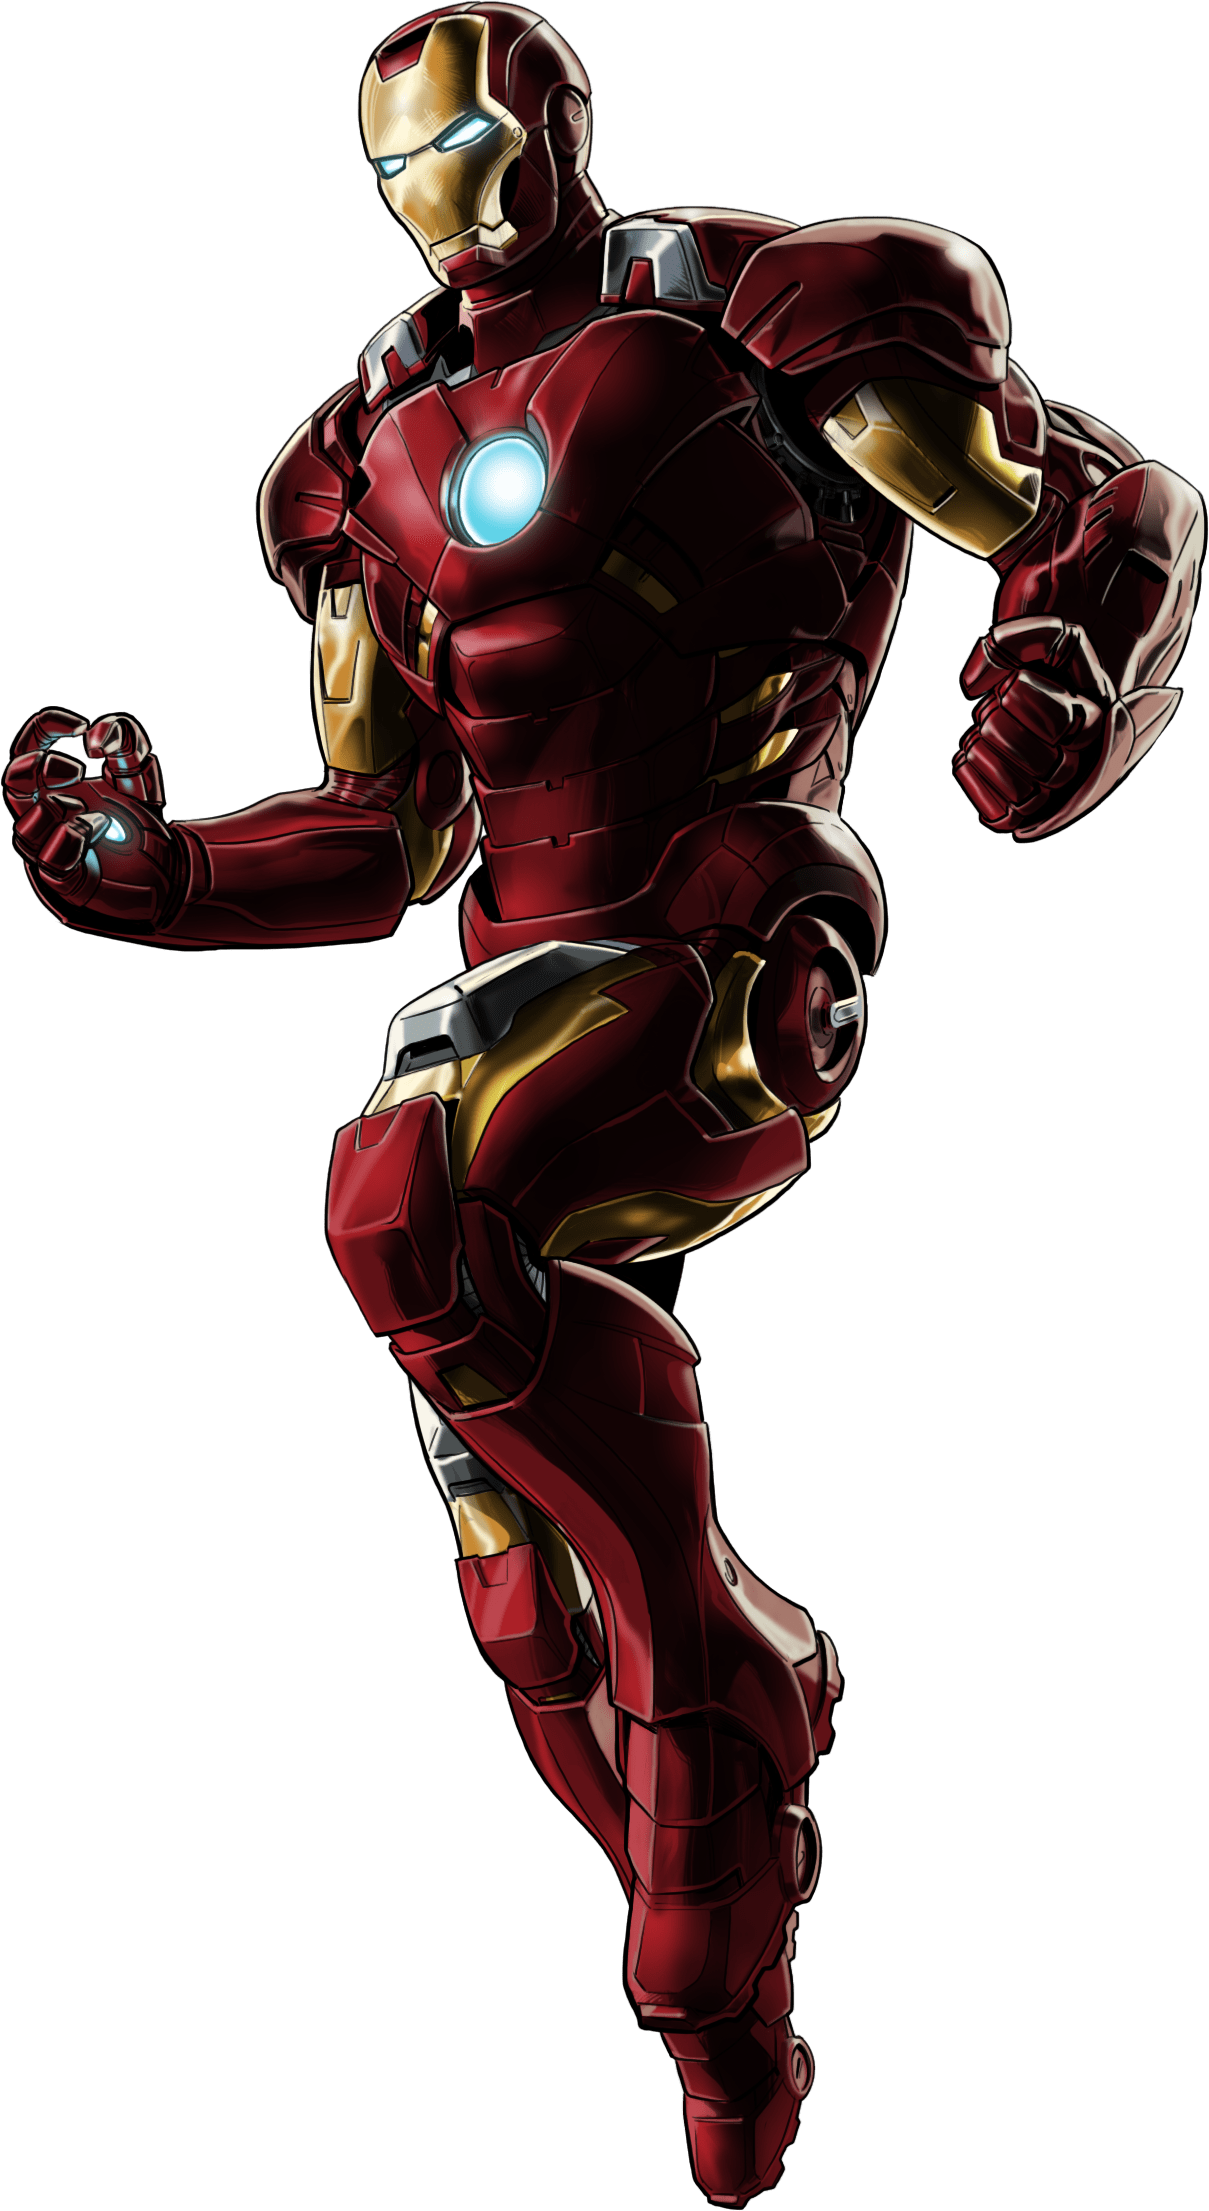 arkadian abc marvel i de iron man arkadian digital gaming nation. Black Bedroom Furniture Sets. Home Design Ideas